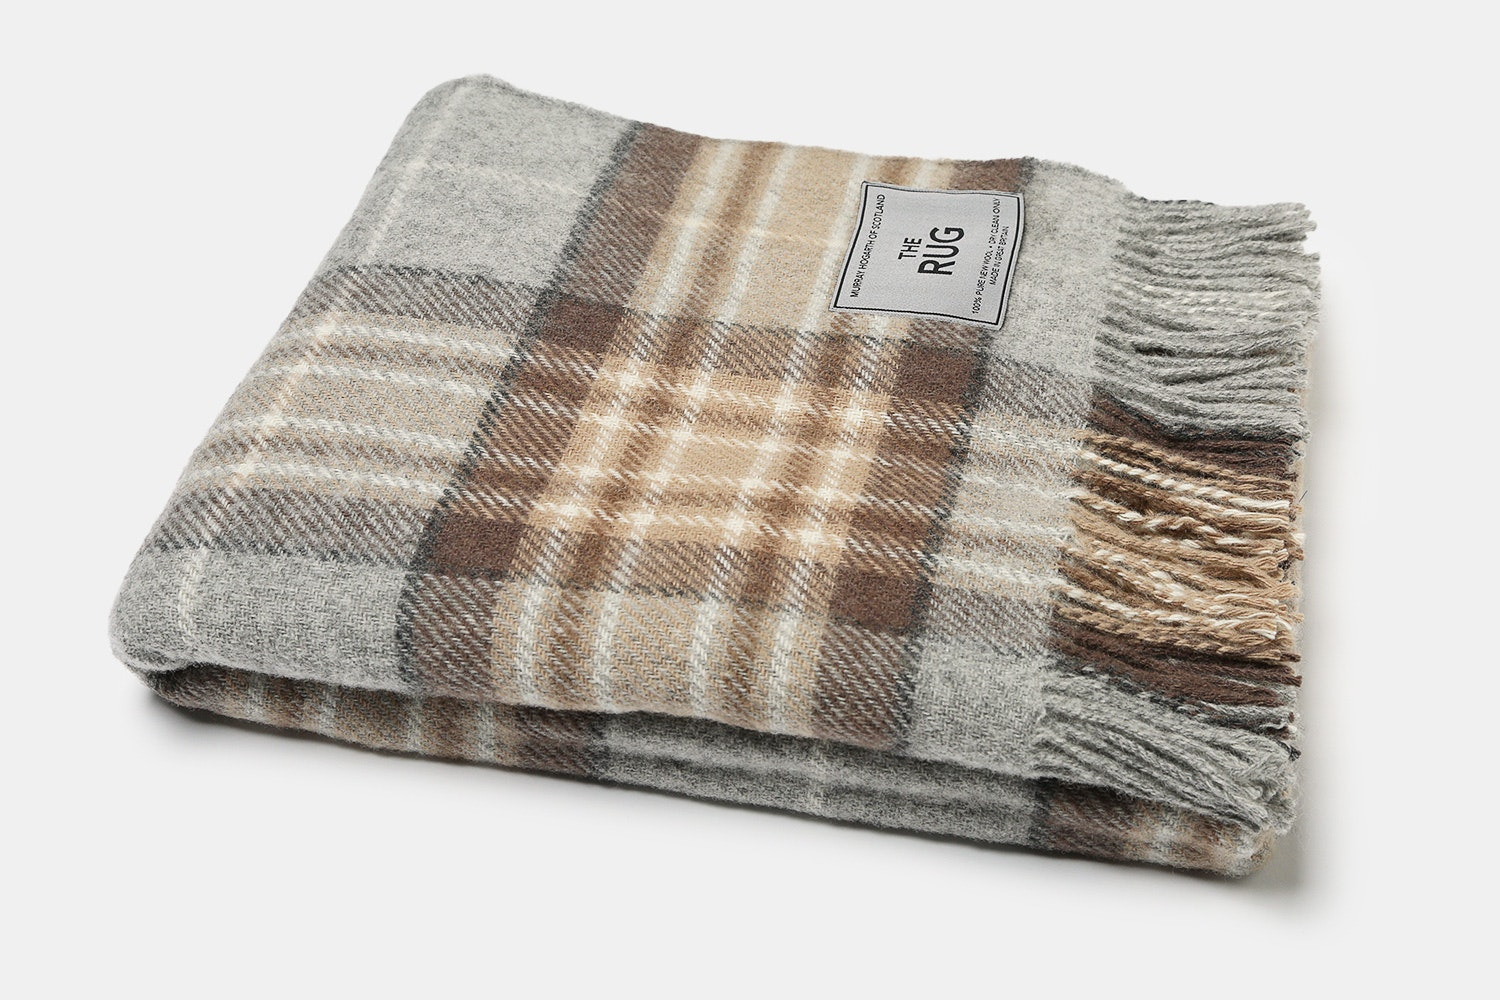 Hogarth Wool Throws